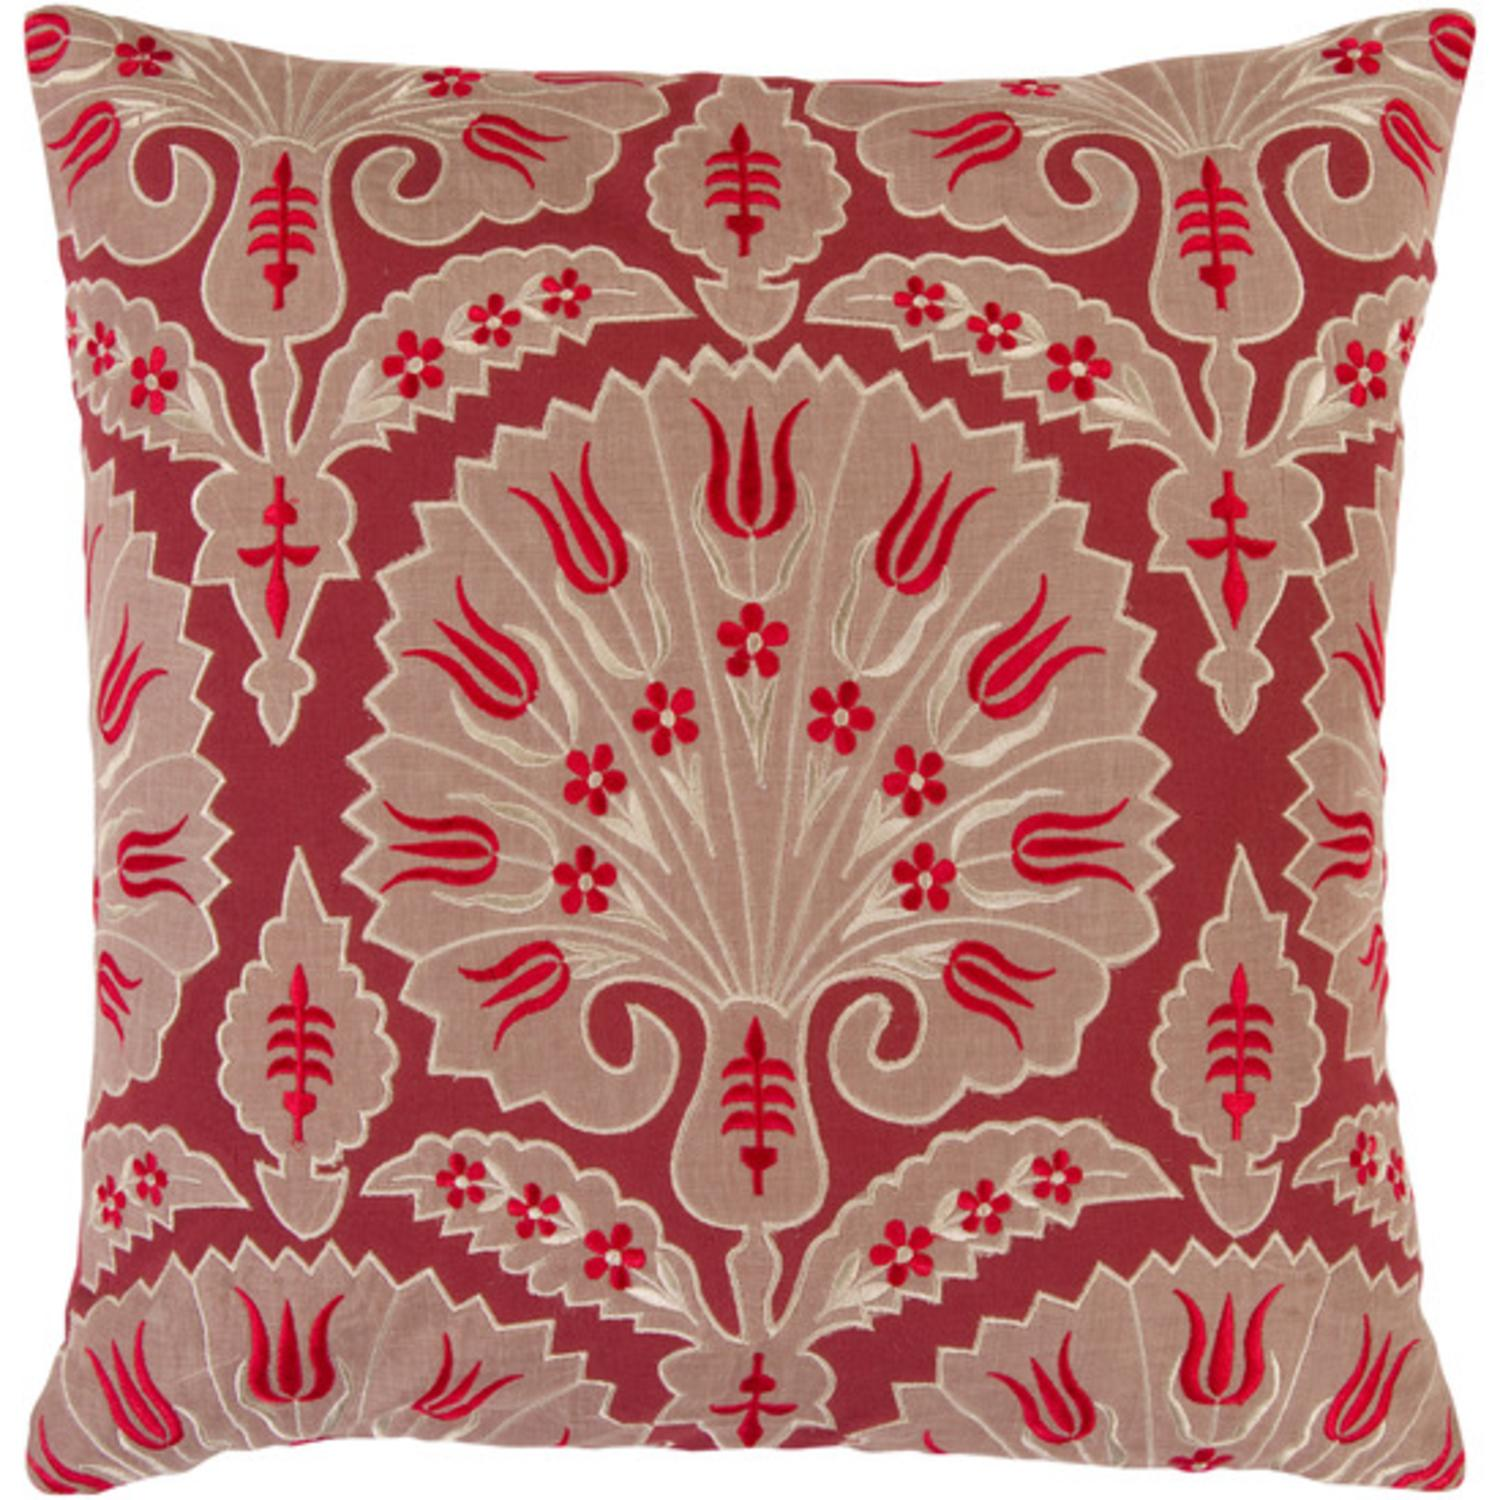 """18"""" Fanciful Floral Scarlet Red and Desert Sand Decorative Throw Pillow"""